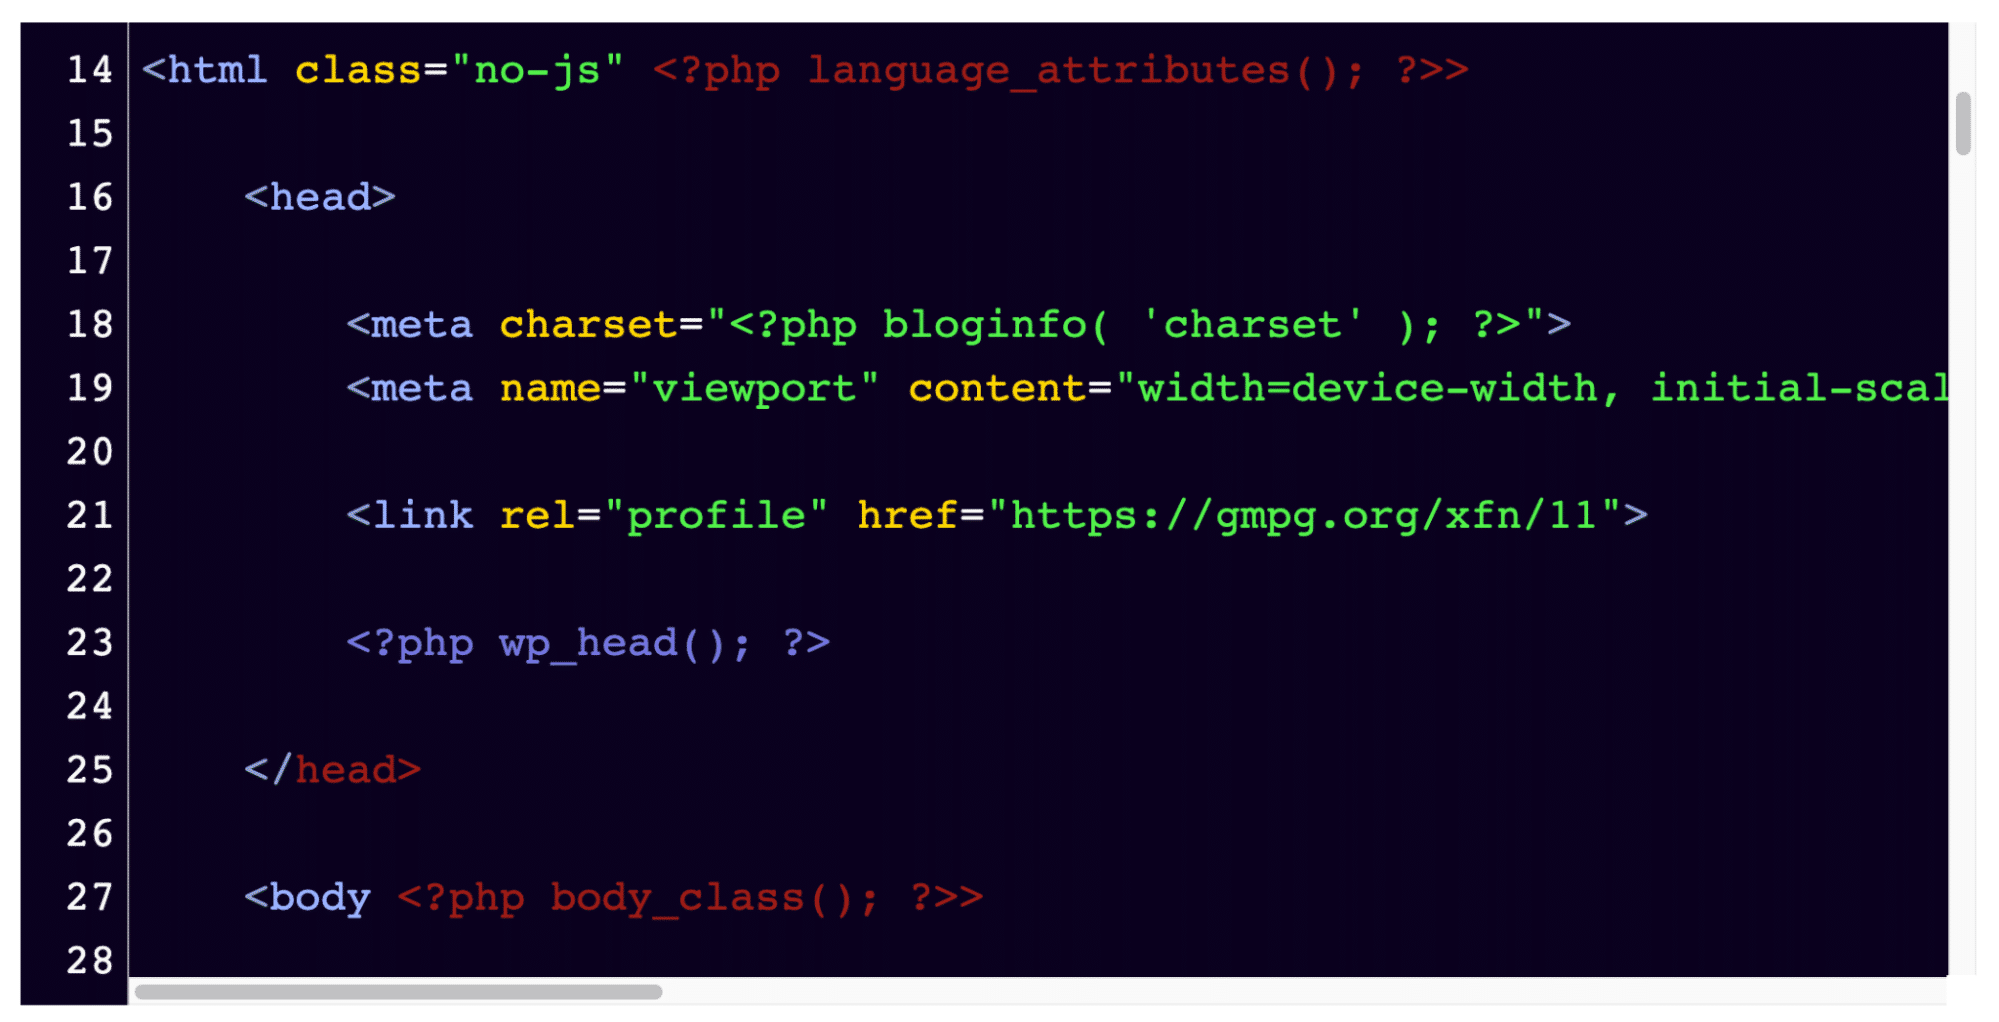 Make sure this is what the snippet looks like in your wp-config.php file